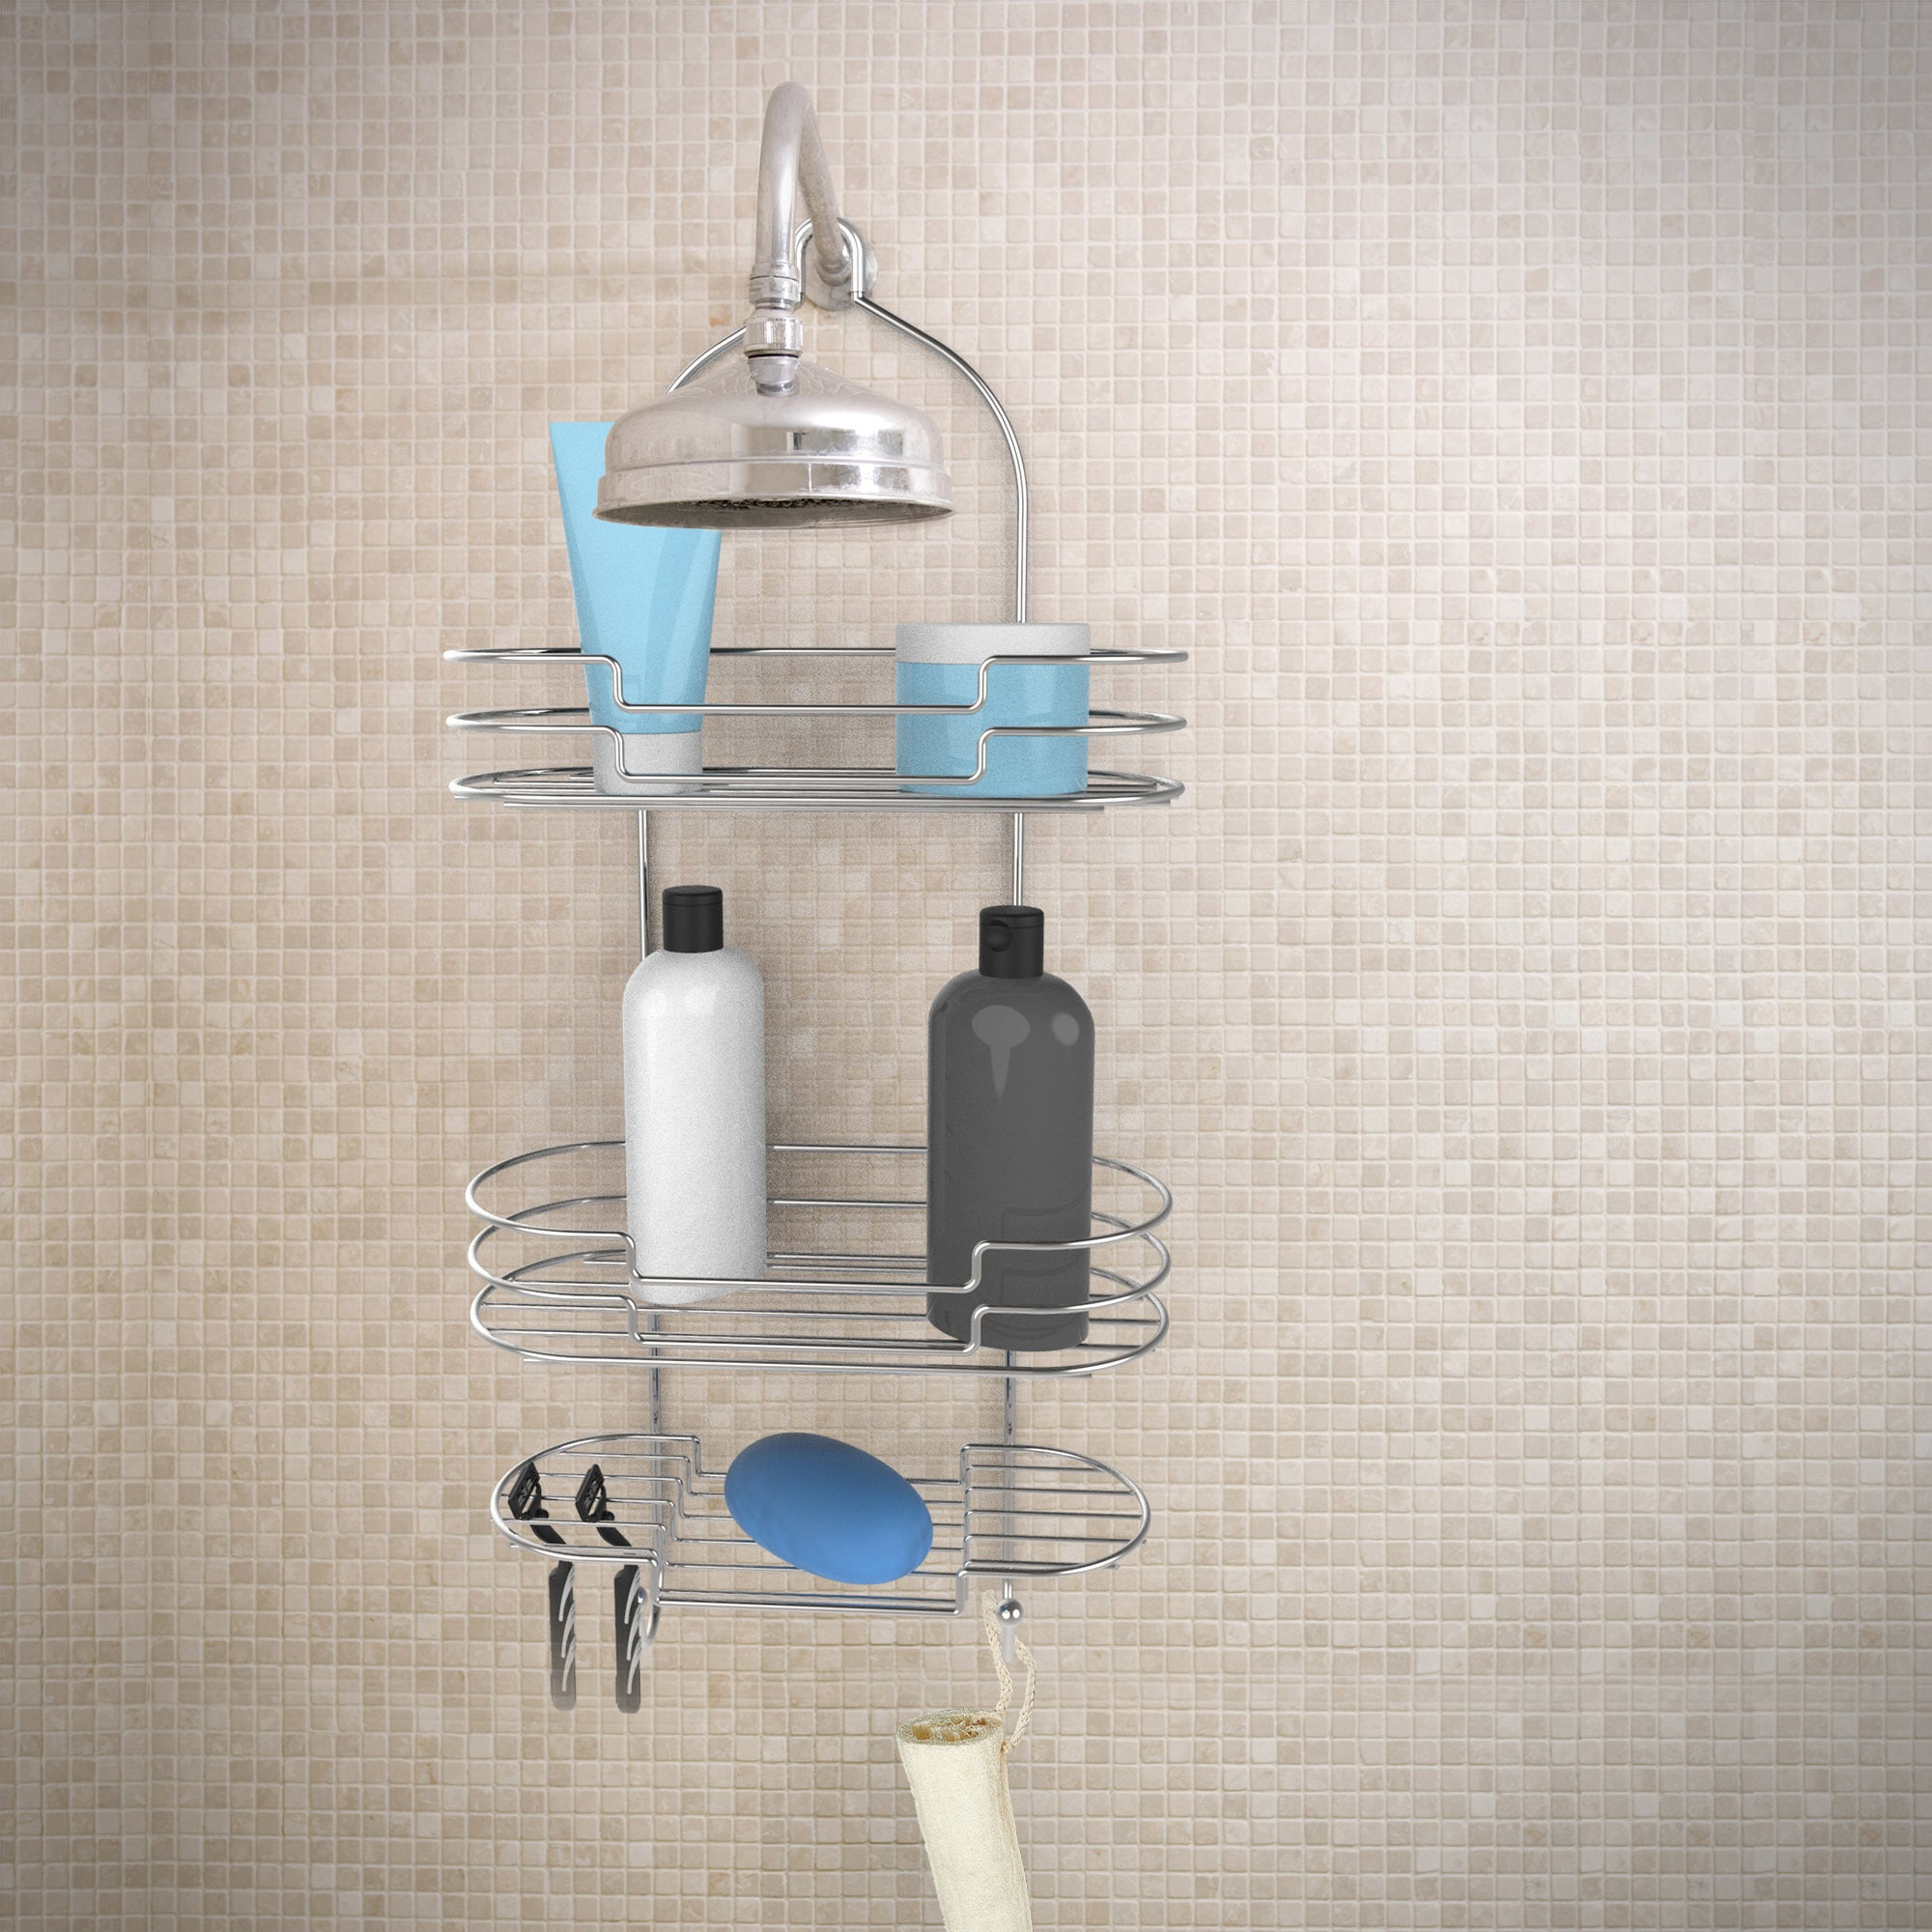 Shop Tall Shower Caddy with Shelves and Hooks- Showerhead Bath ...